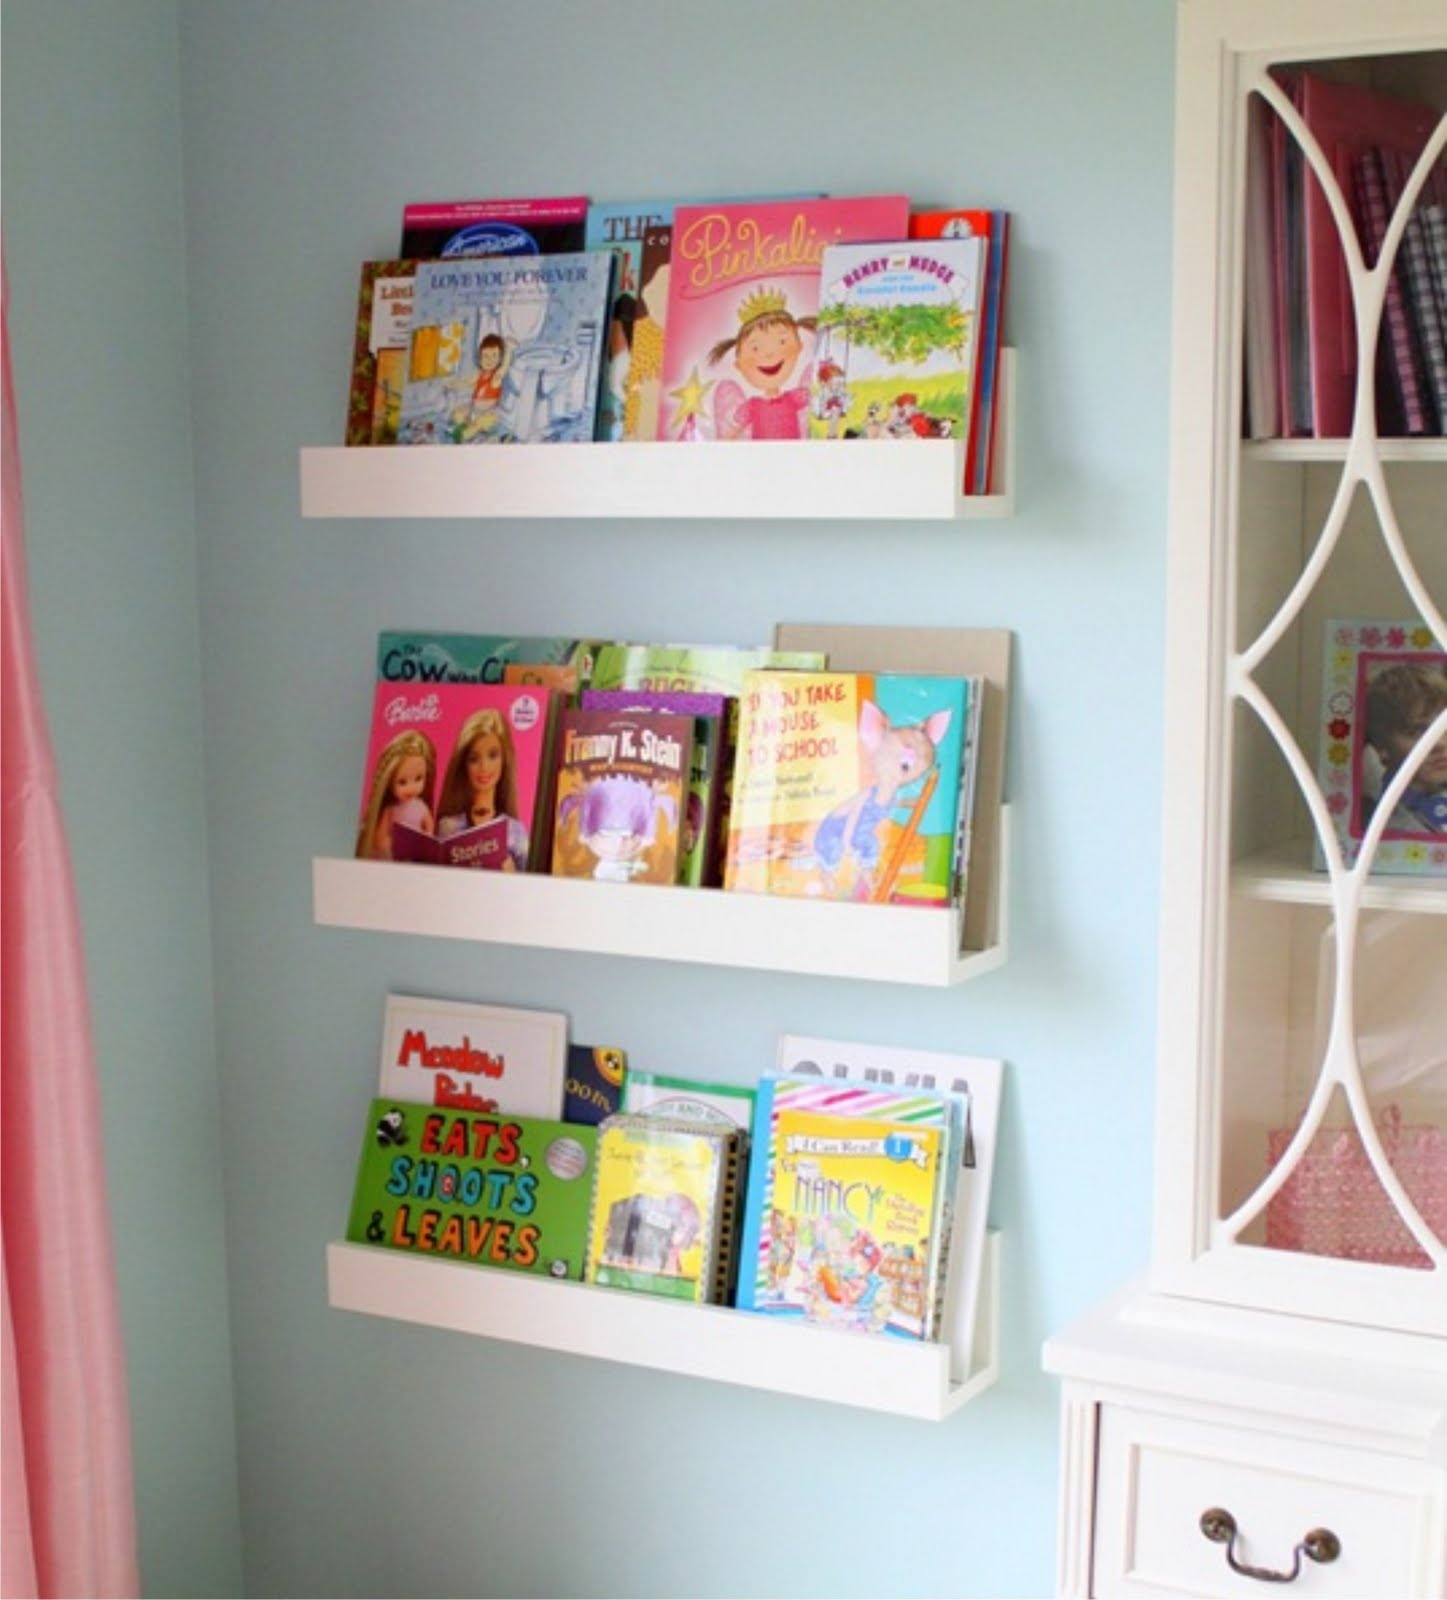 Winks & Daisies: DIY Wall Shelves